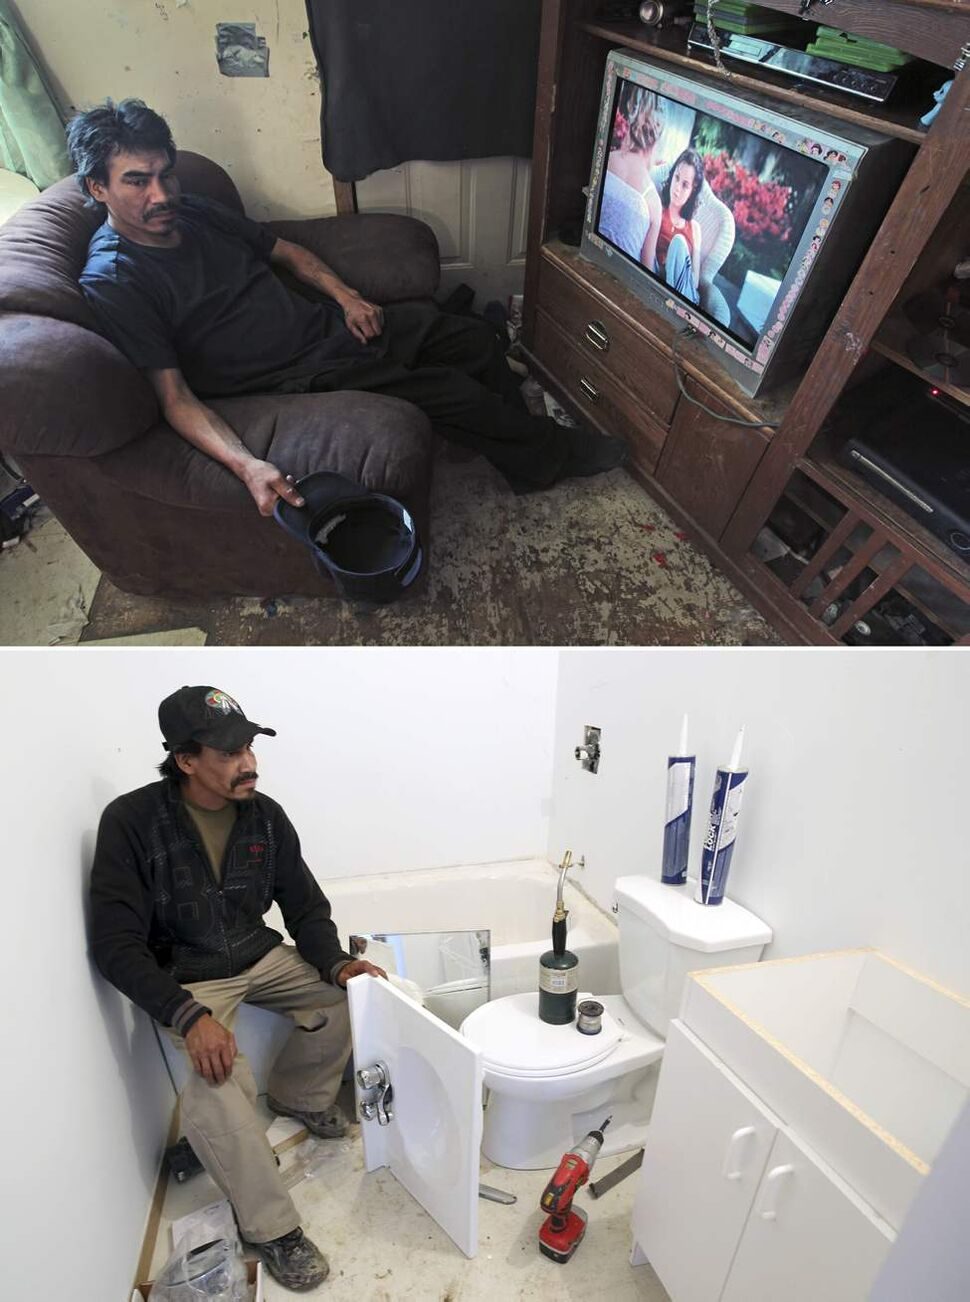 July 2010 - Geordie Rae Jr. takes a break in the family home in St.Theresa Point First Nation after hauling water by foot to his family's home.   August 2011 - Geordie Rae Jr. takes a break while renovating his new bathroom with running water.   (JOE BRYKSA / WINNIPEG FREE PRESS)